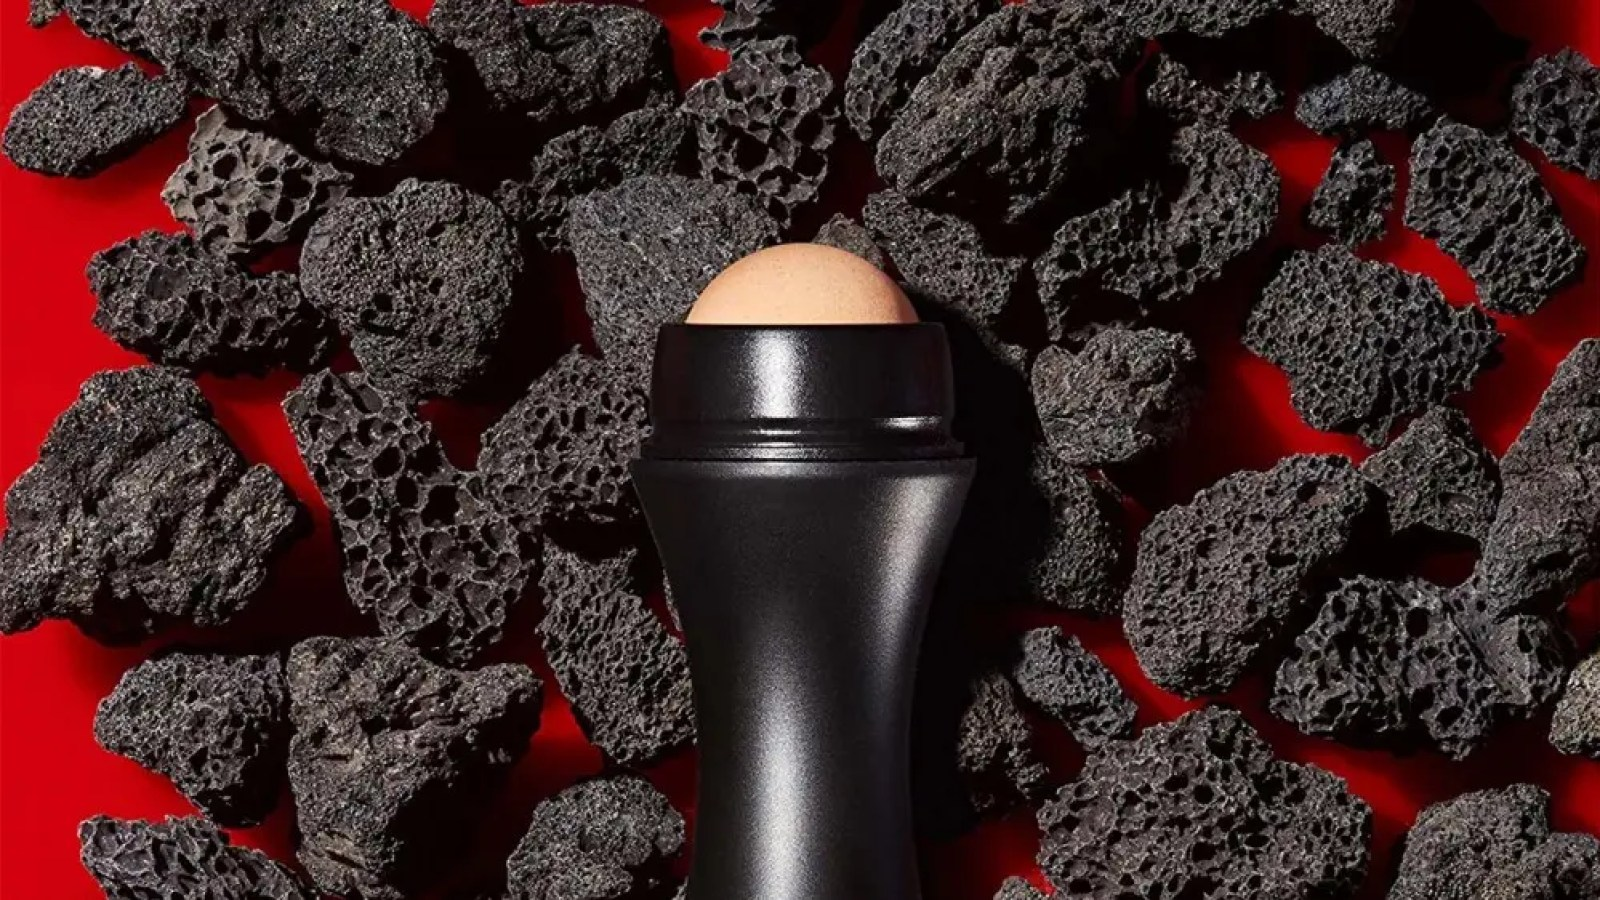 A Revlon volcanic roller, resting on a pile of volcanic pumice stone.